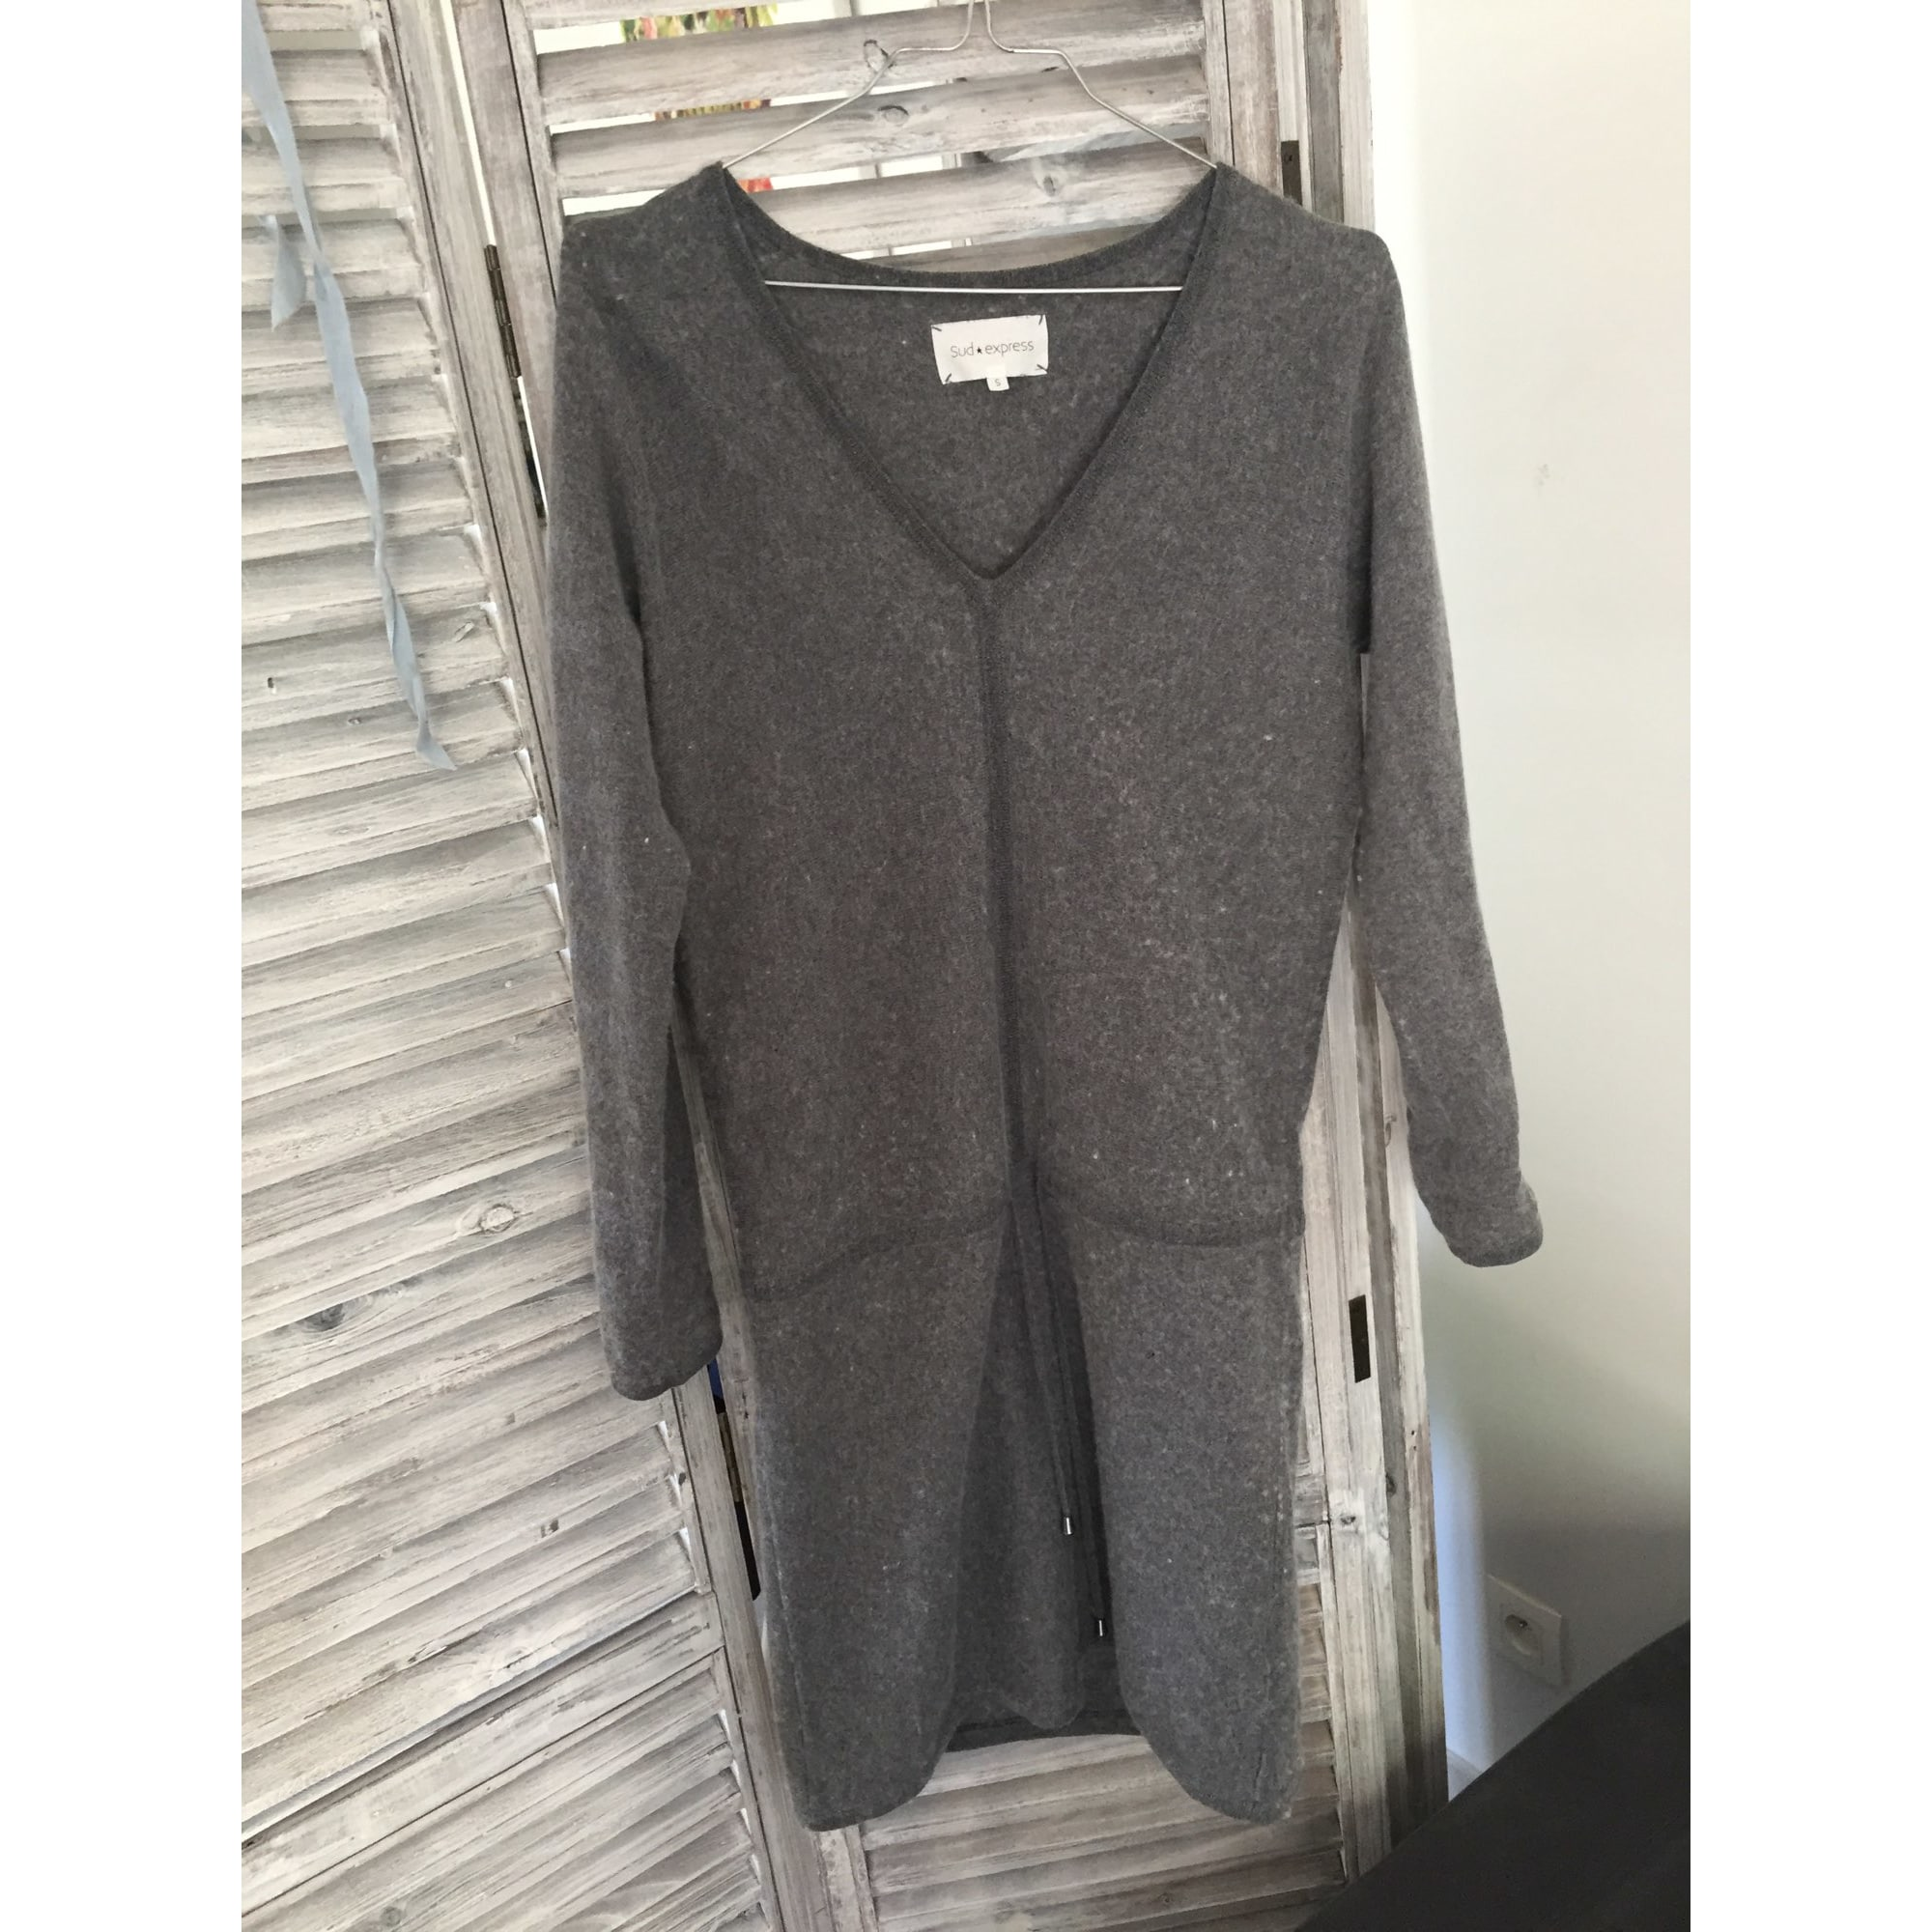 6135011 36 Pull Gris s Express T1 Robe Sud xH8vvp